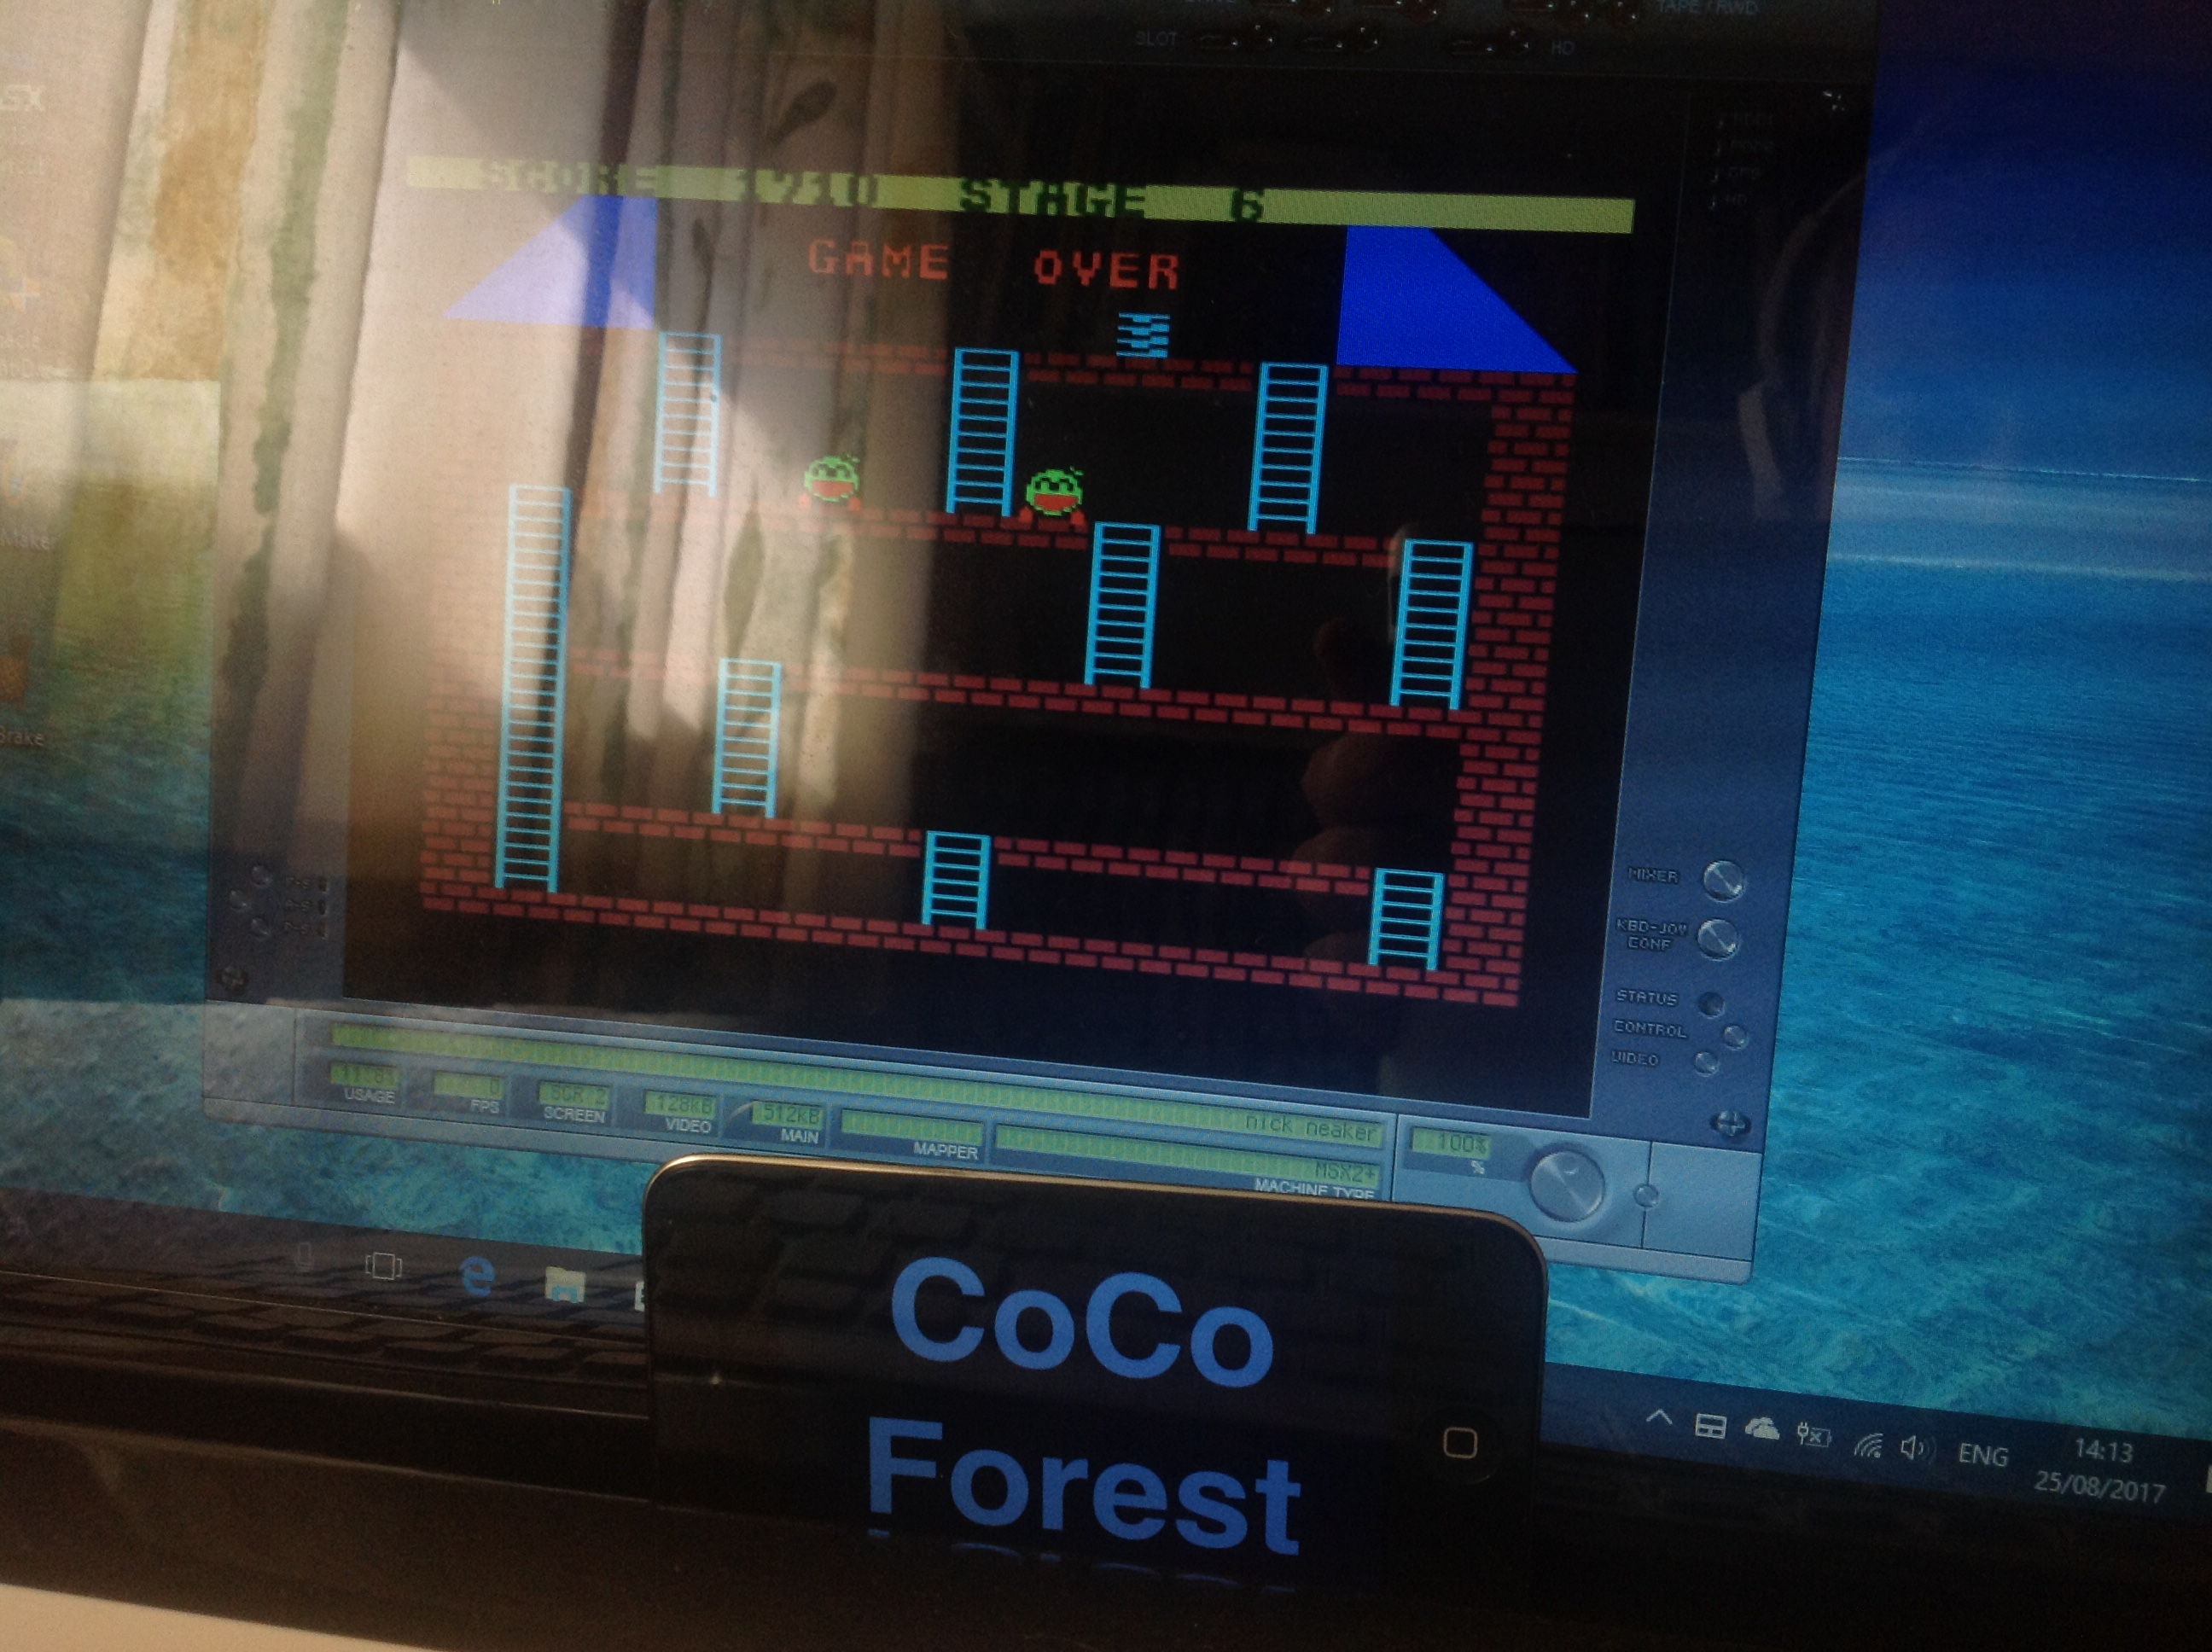 CoCoForest: Nick Neaker (MSX Emulated) 1,710 points on 2017-08-25 08:15:00